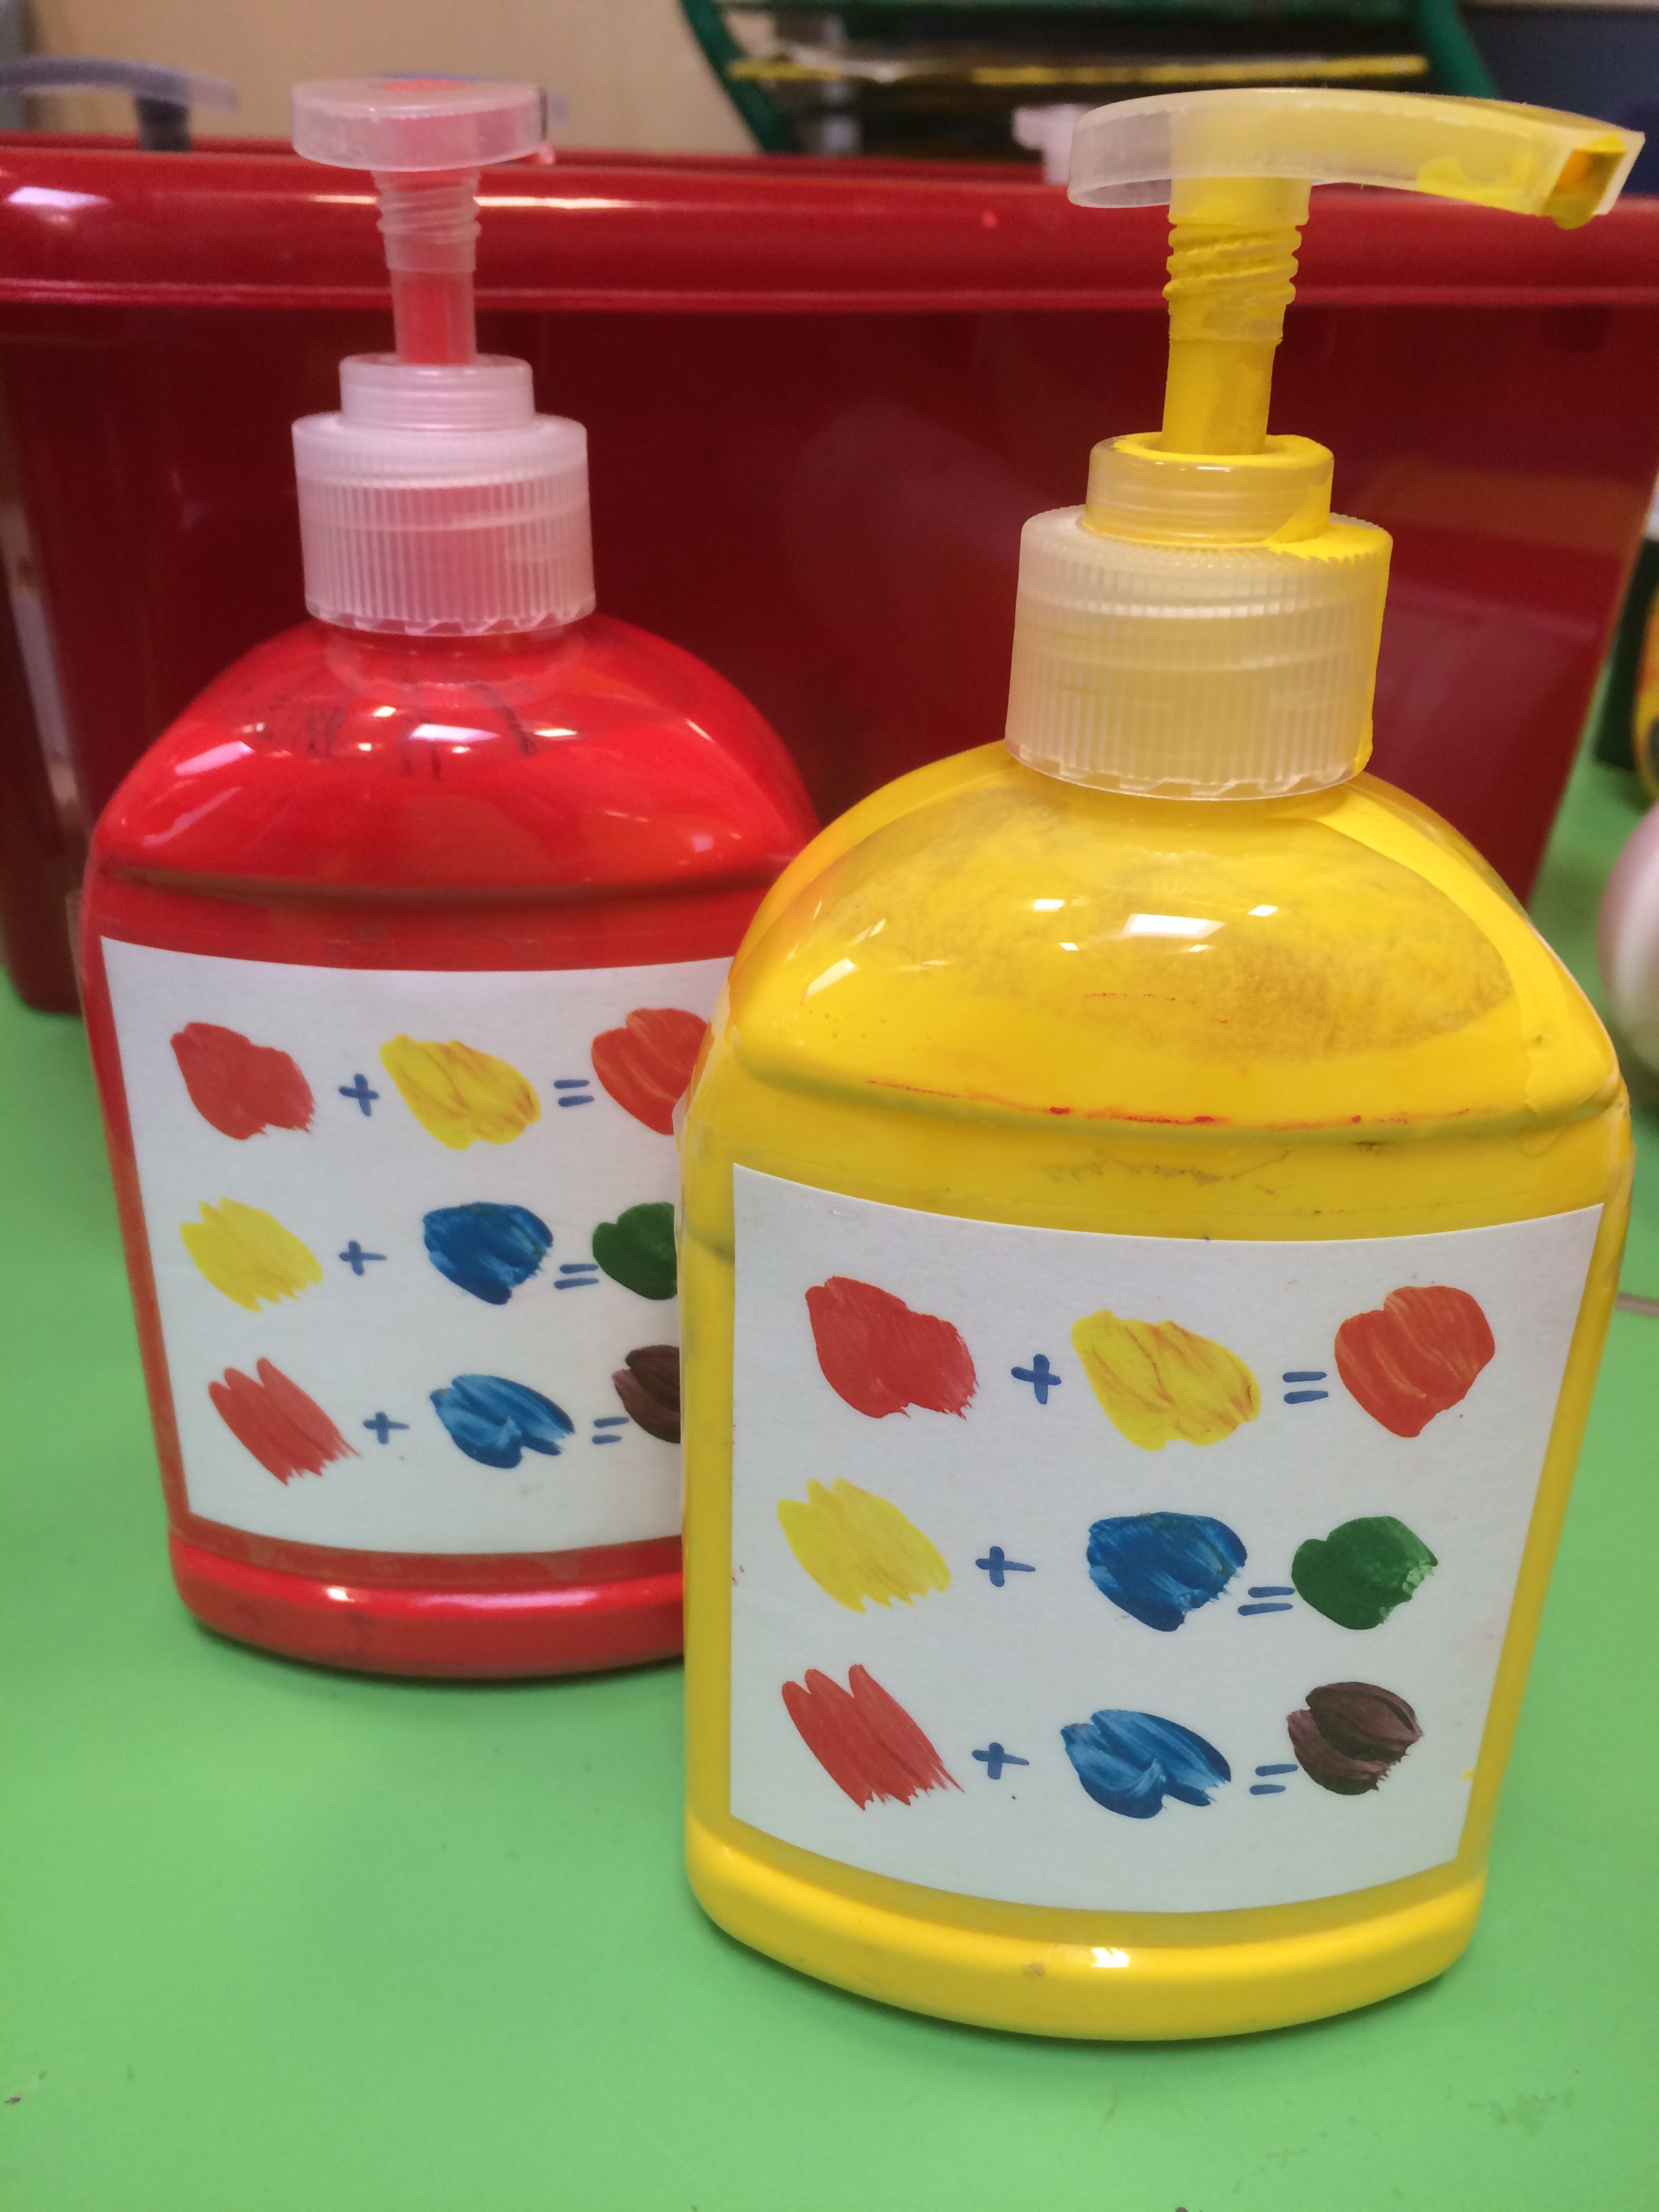 Eyfs for easy access to paint for colour mixing! I added the labels ...